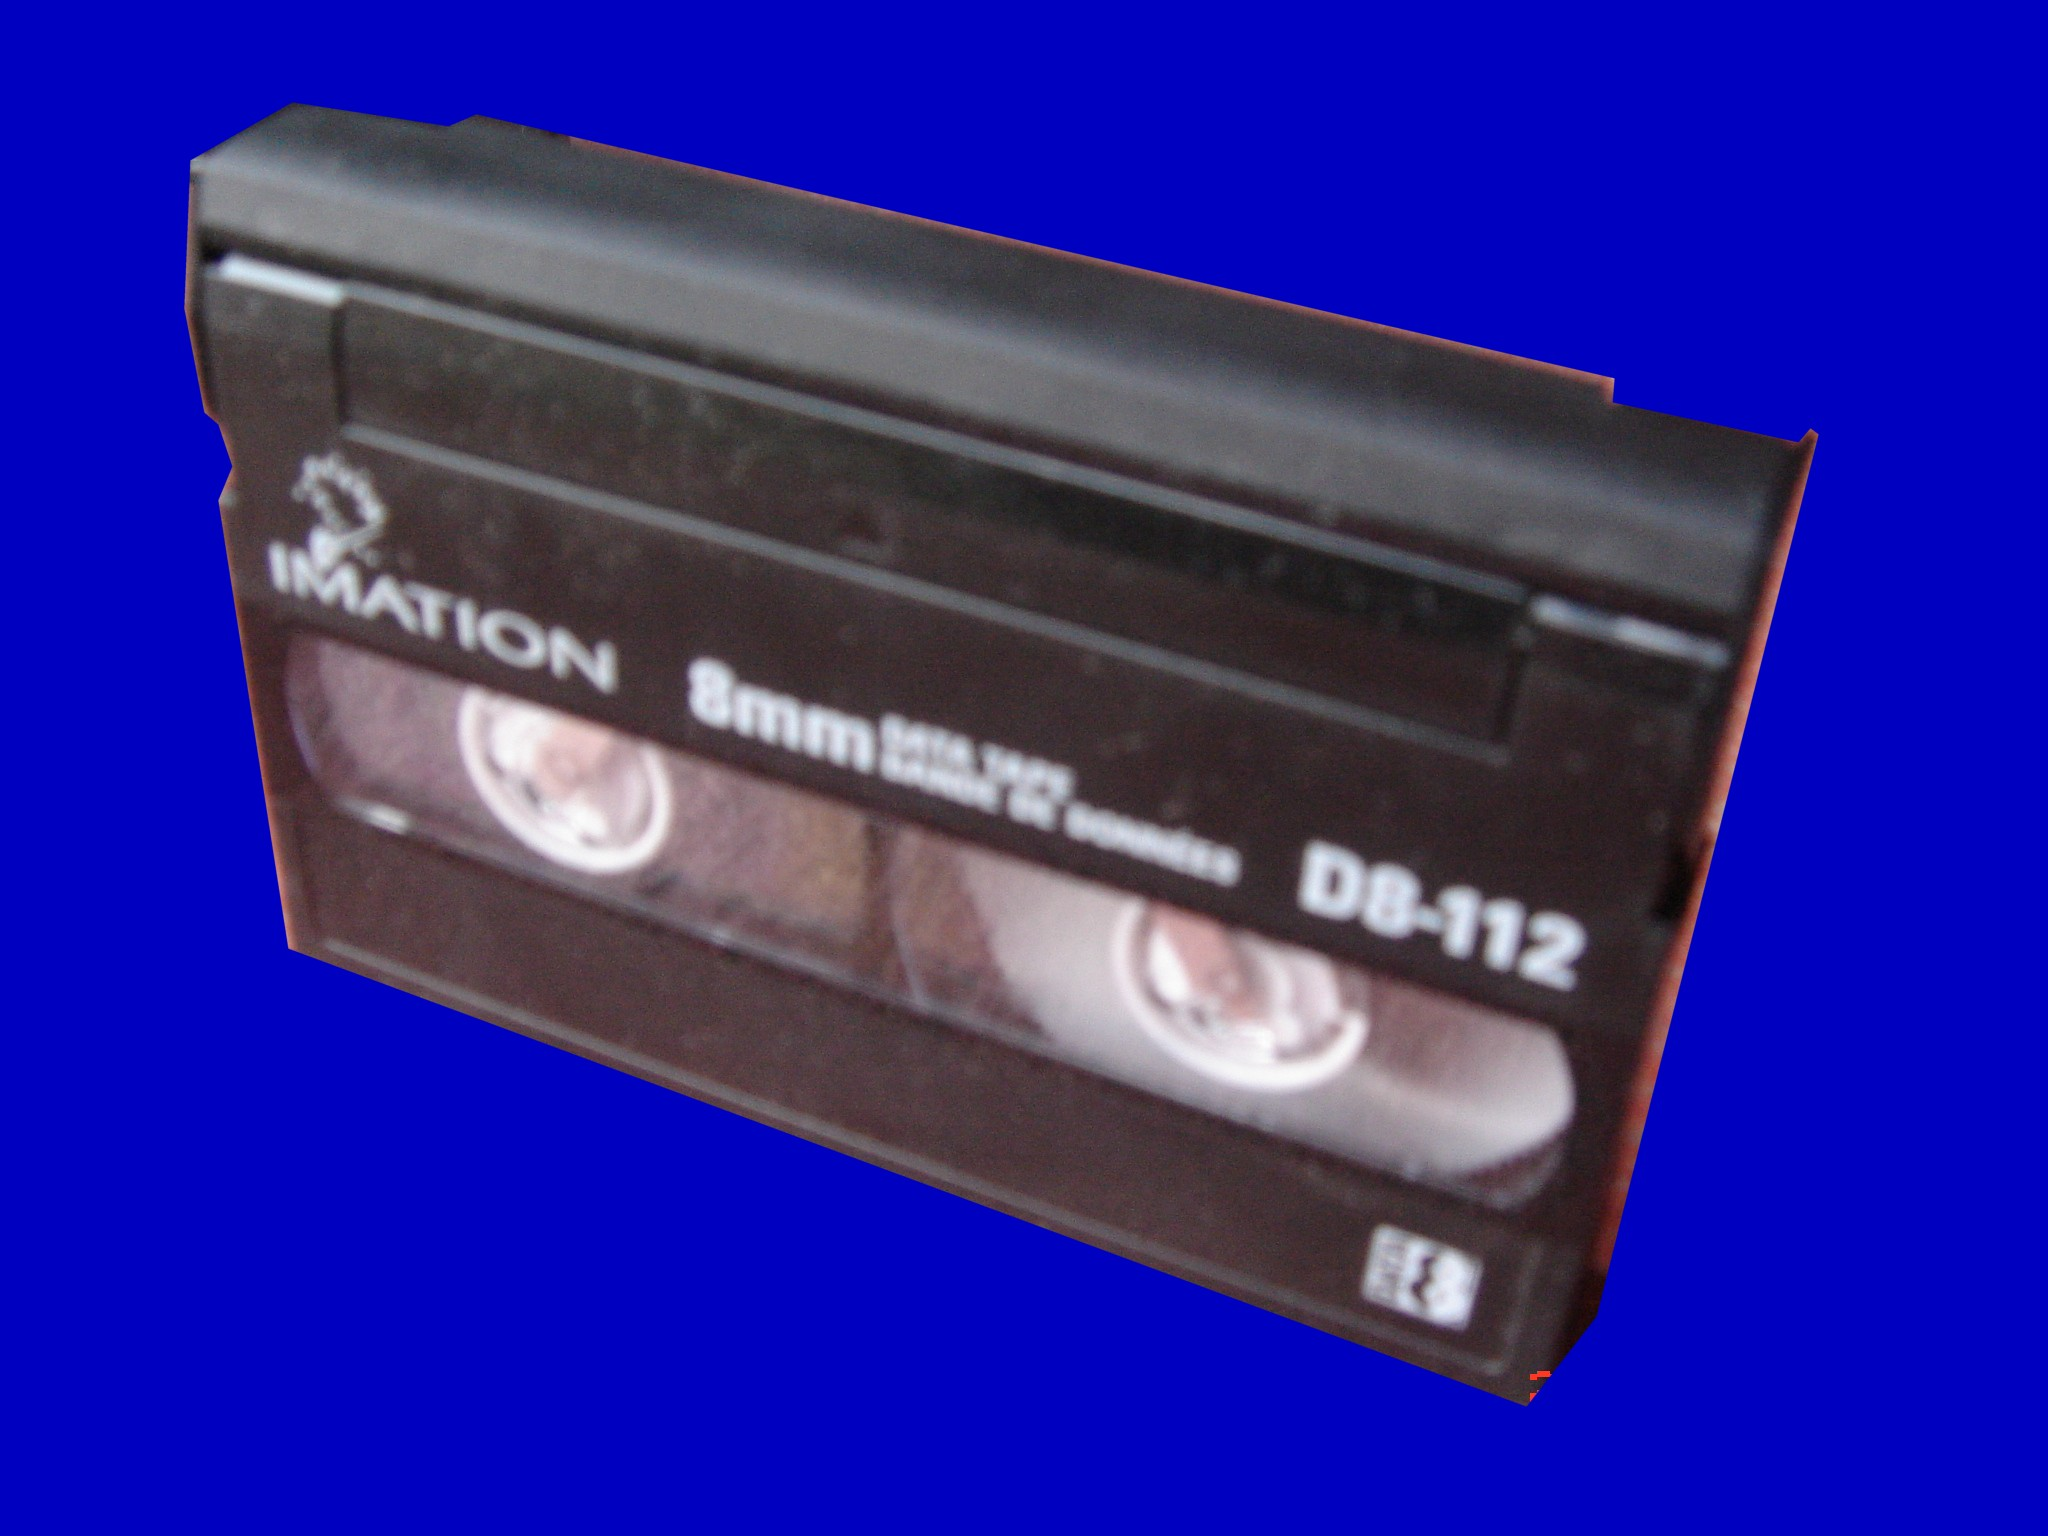 A DAT DDS3 data cartridge recieved for tape transfer to usb disc. This tape was made by Maxell and was marked as 125M 12GB capacity.